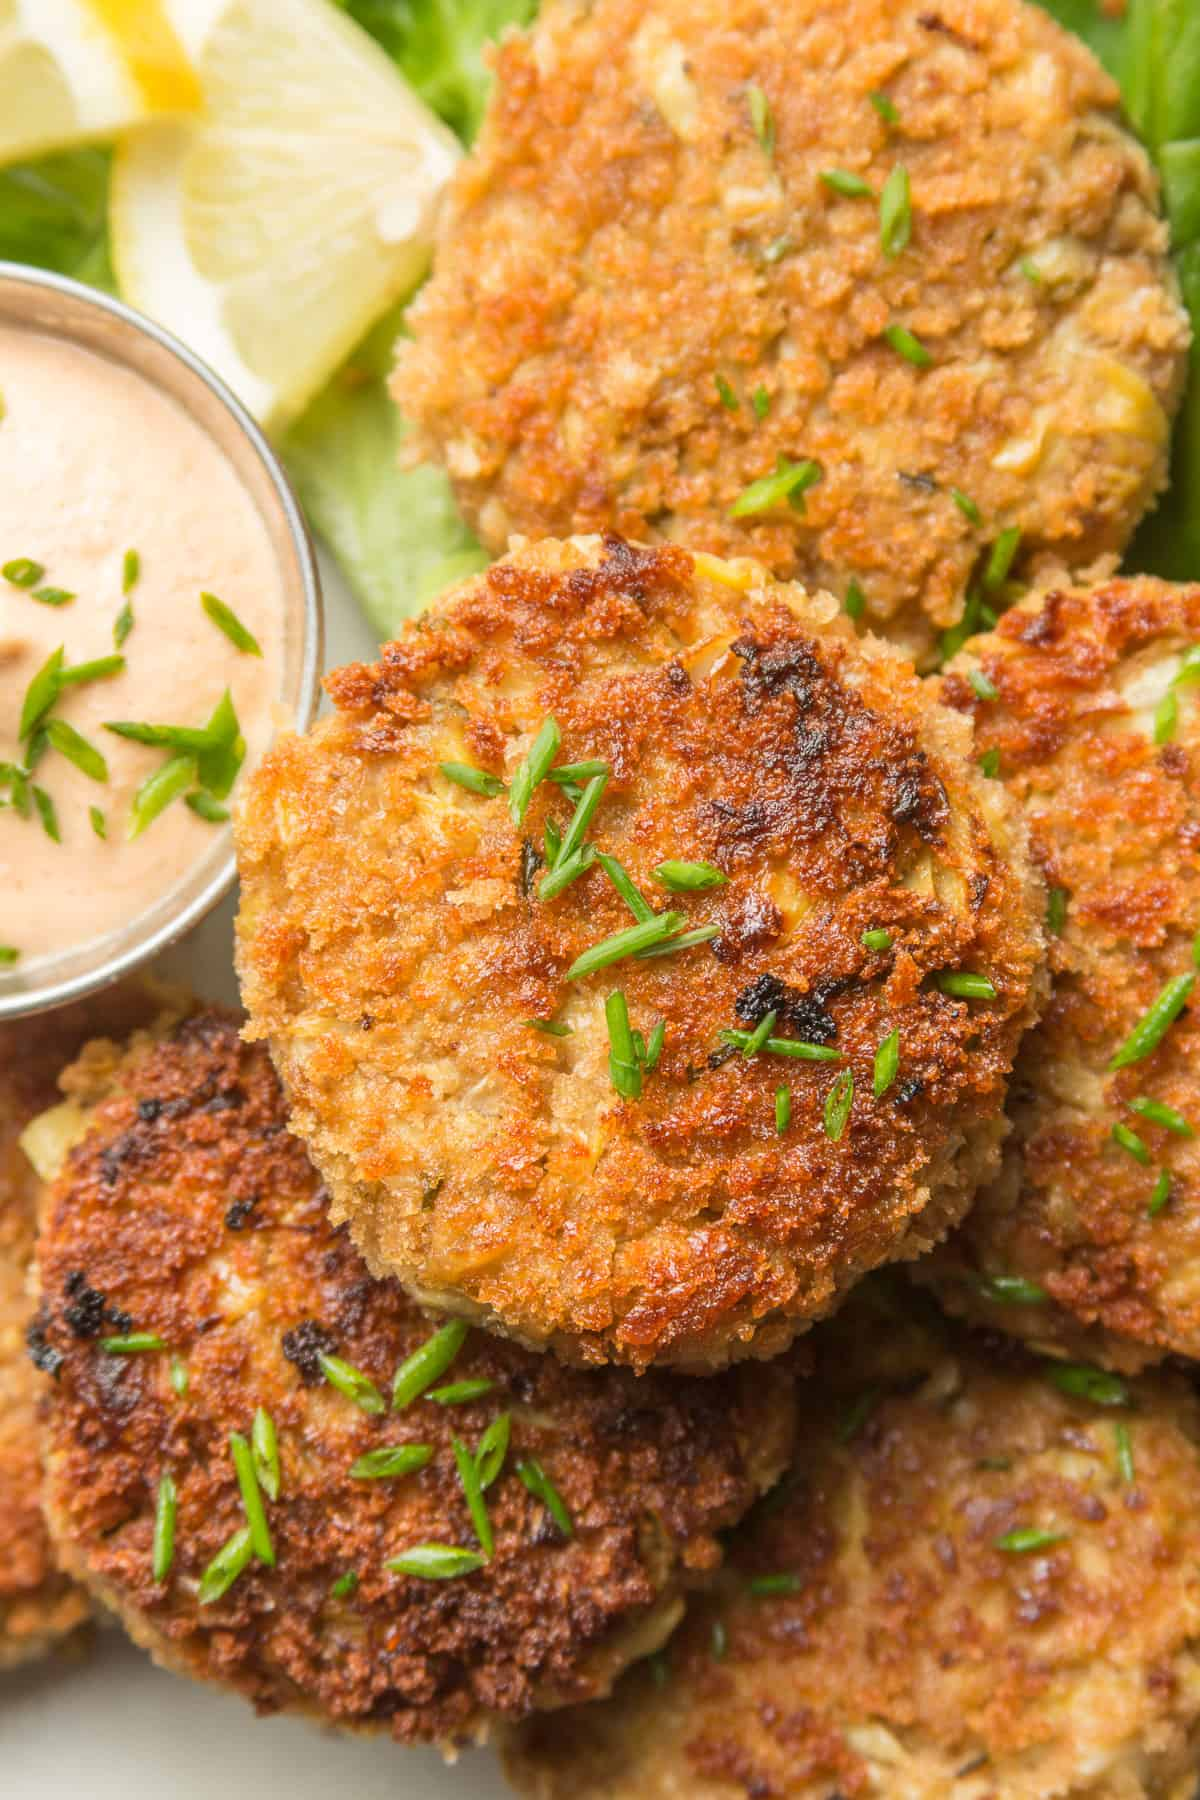 Vegan Crab Cakes With Chives on Top and Aioli on the Side